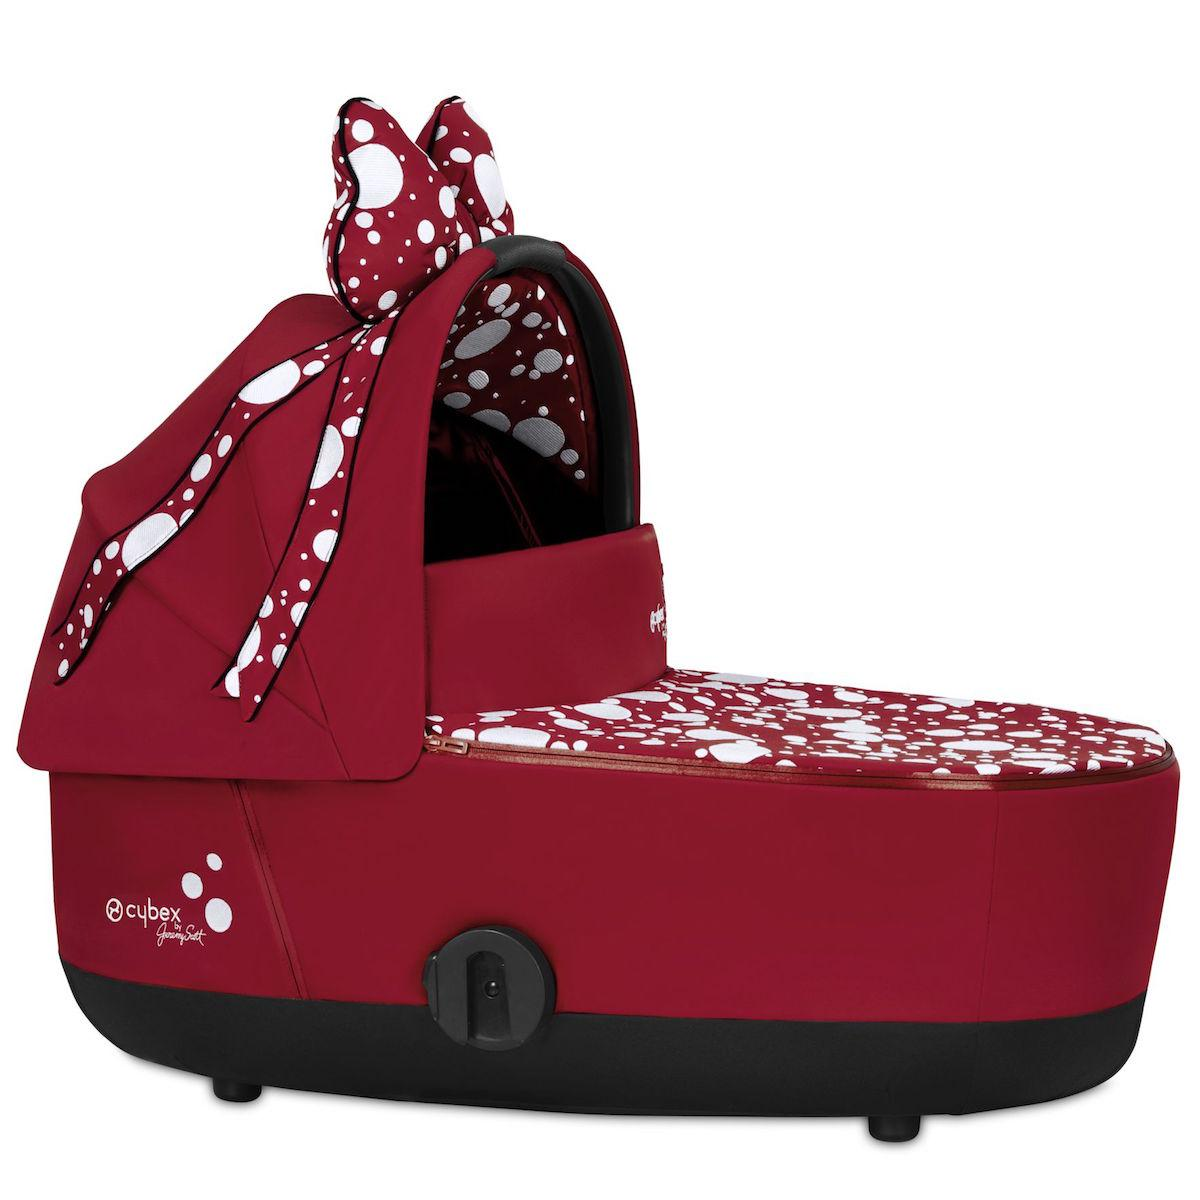 Nacelle luxe MIOS Cybex Petticoat Red dark red